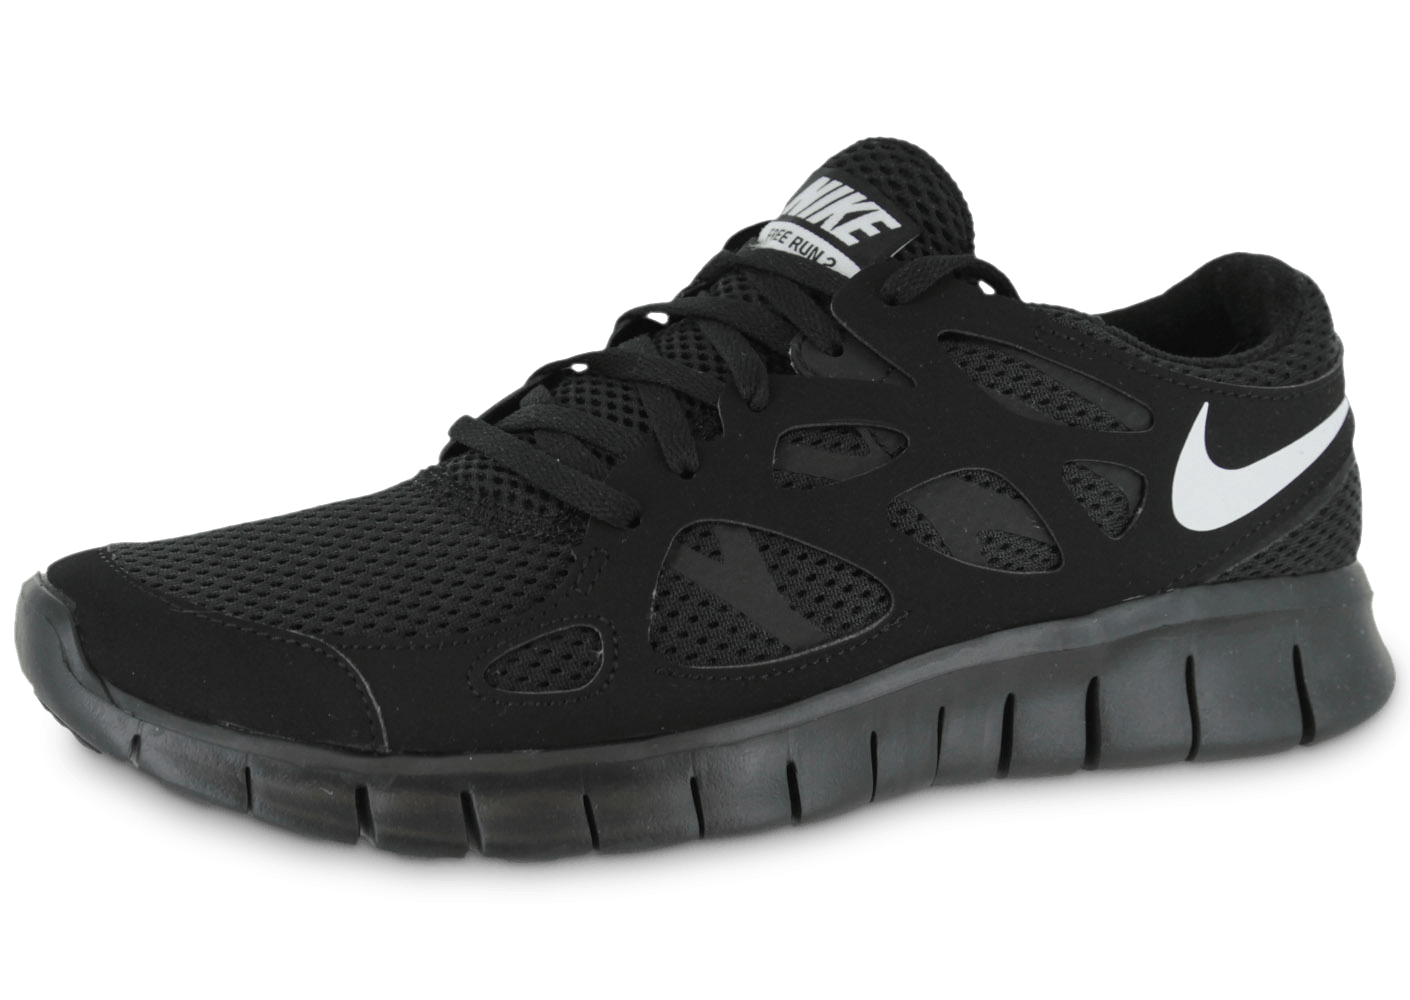 nike free run 2 noir chaussures homme chausport. Black Bedroom Furniture Sets. Home Design Ideas